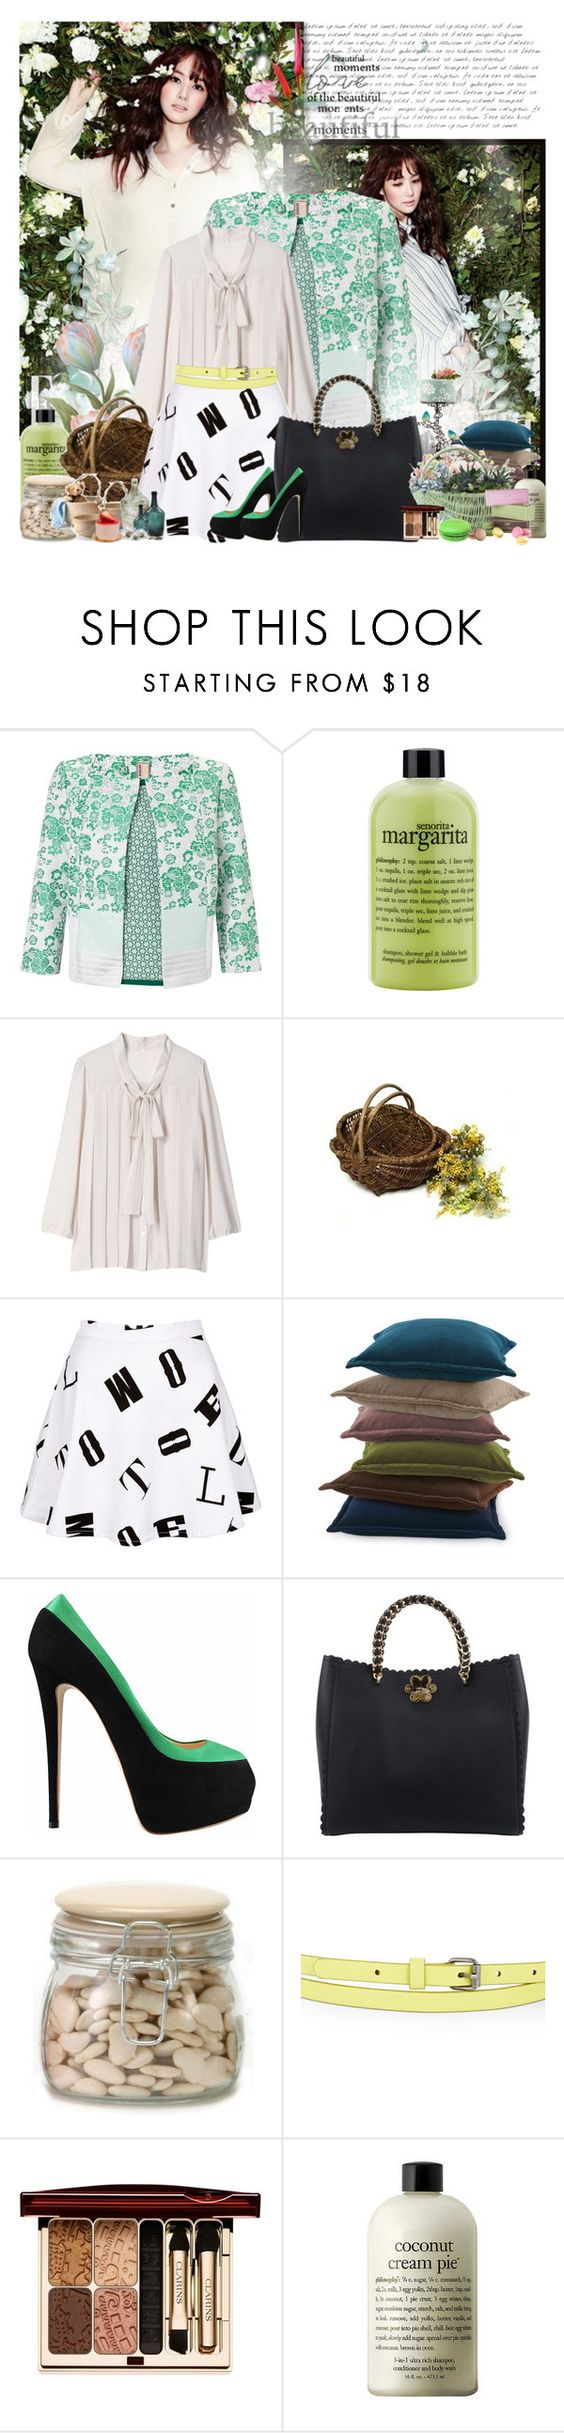 """Refresh"" by rainie-minnie ❤ liked on Polyvore featuring Antonio Marras, philosophy, French Country, Motel, Giuseppe Zanotti, Mulberry, BCBGMAXAZRIA, Clarins and INC International Concepts"